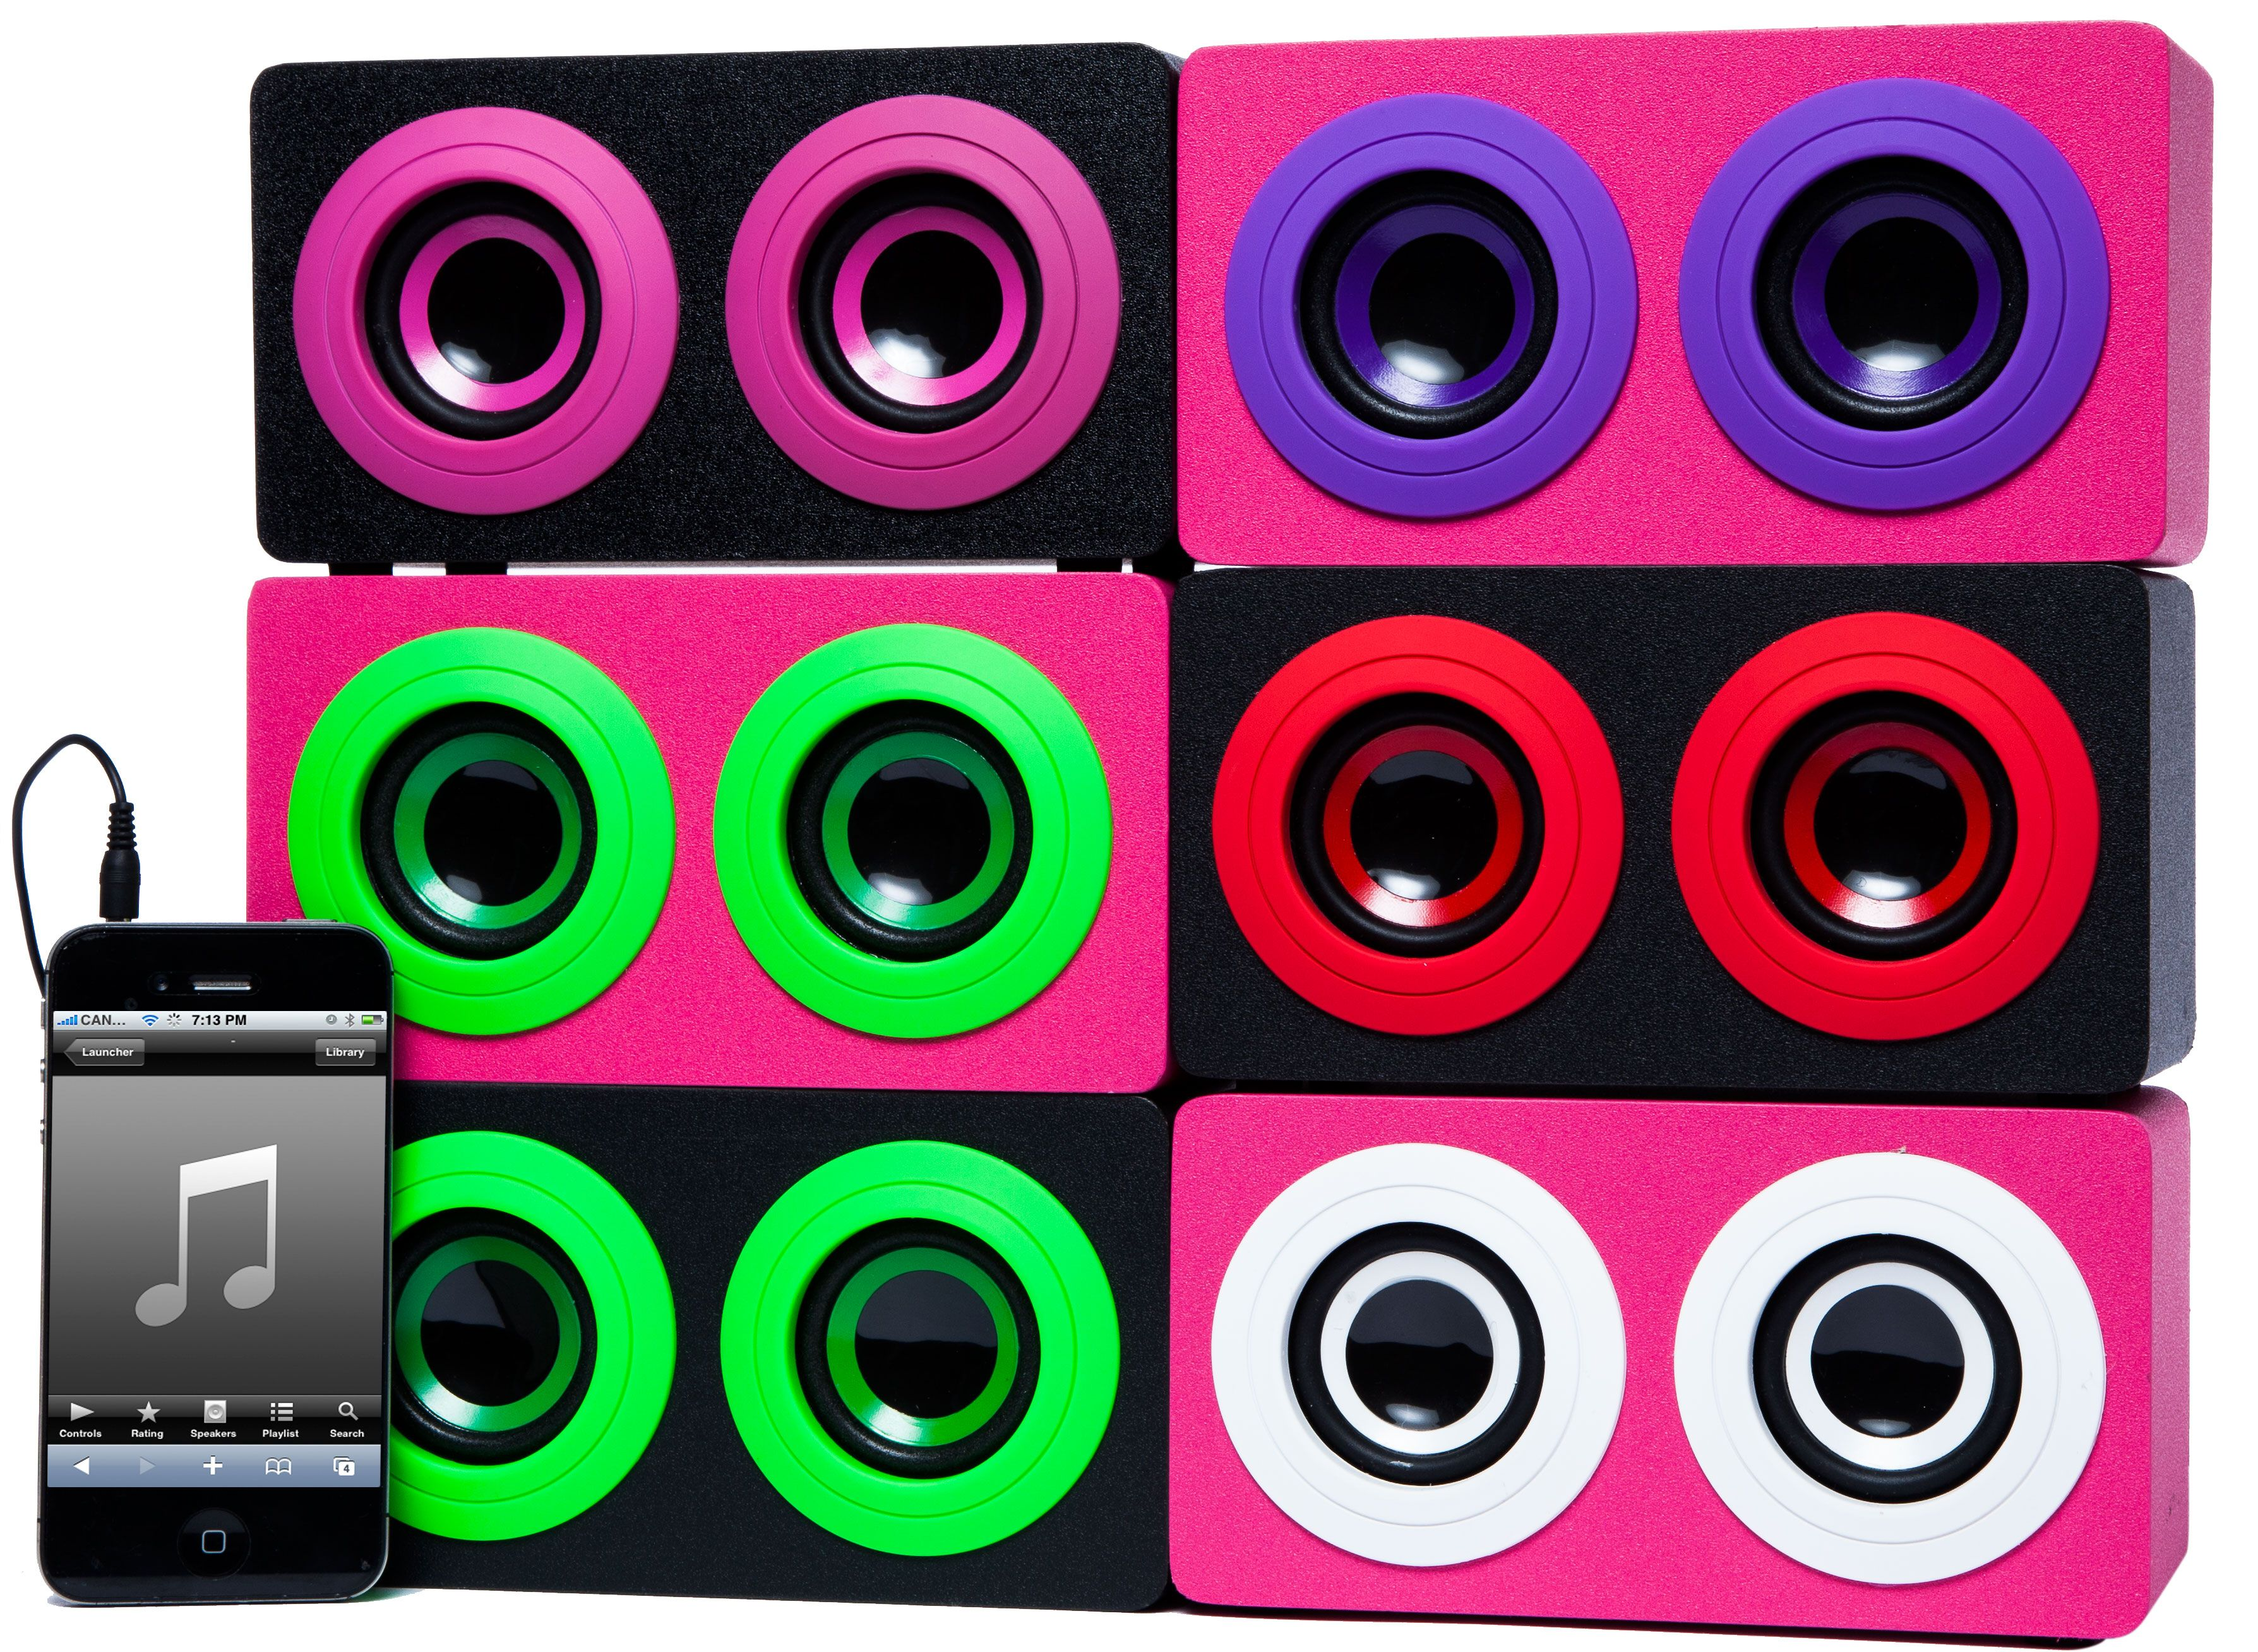 Blast Speaker    Big Sound And Style From A Small Speaker! This Gift,  Exclusive To Five Below, Is Perfect For A College Dorm Room Or Bedroom. Part 27